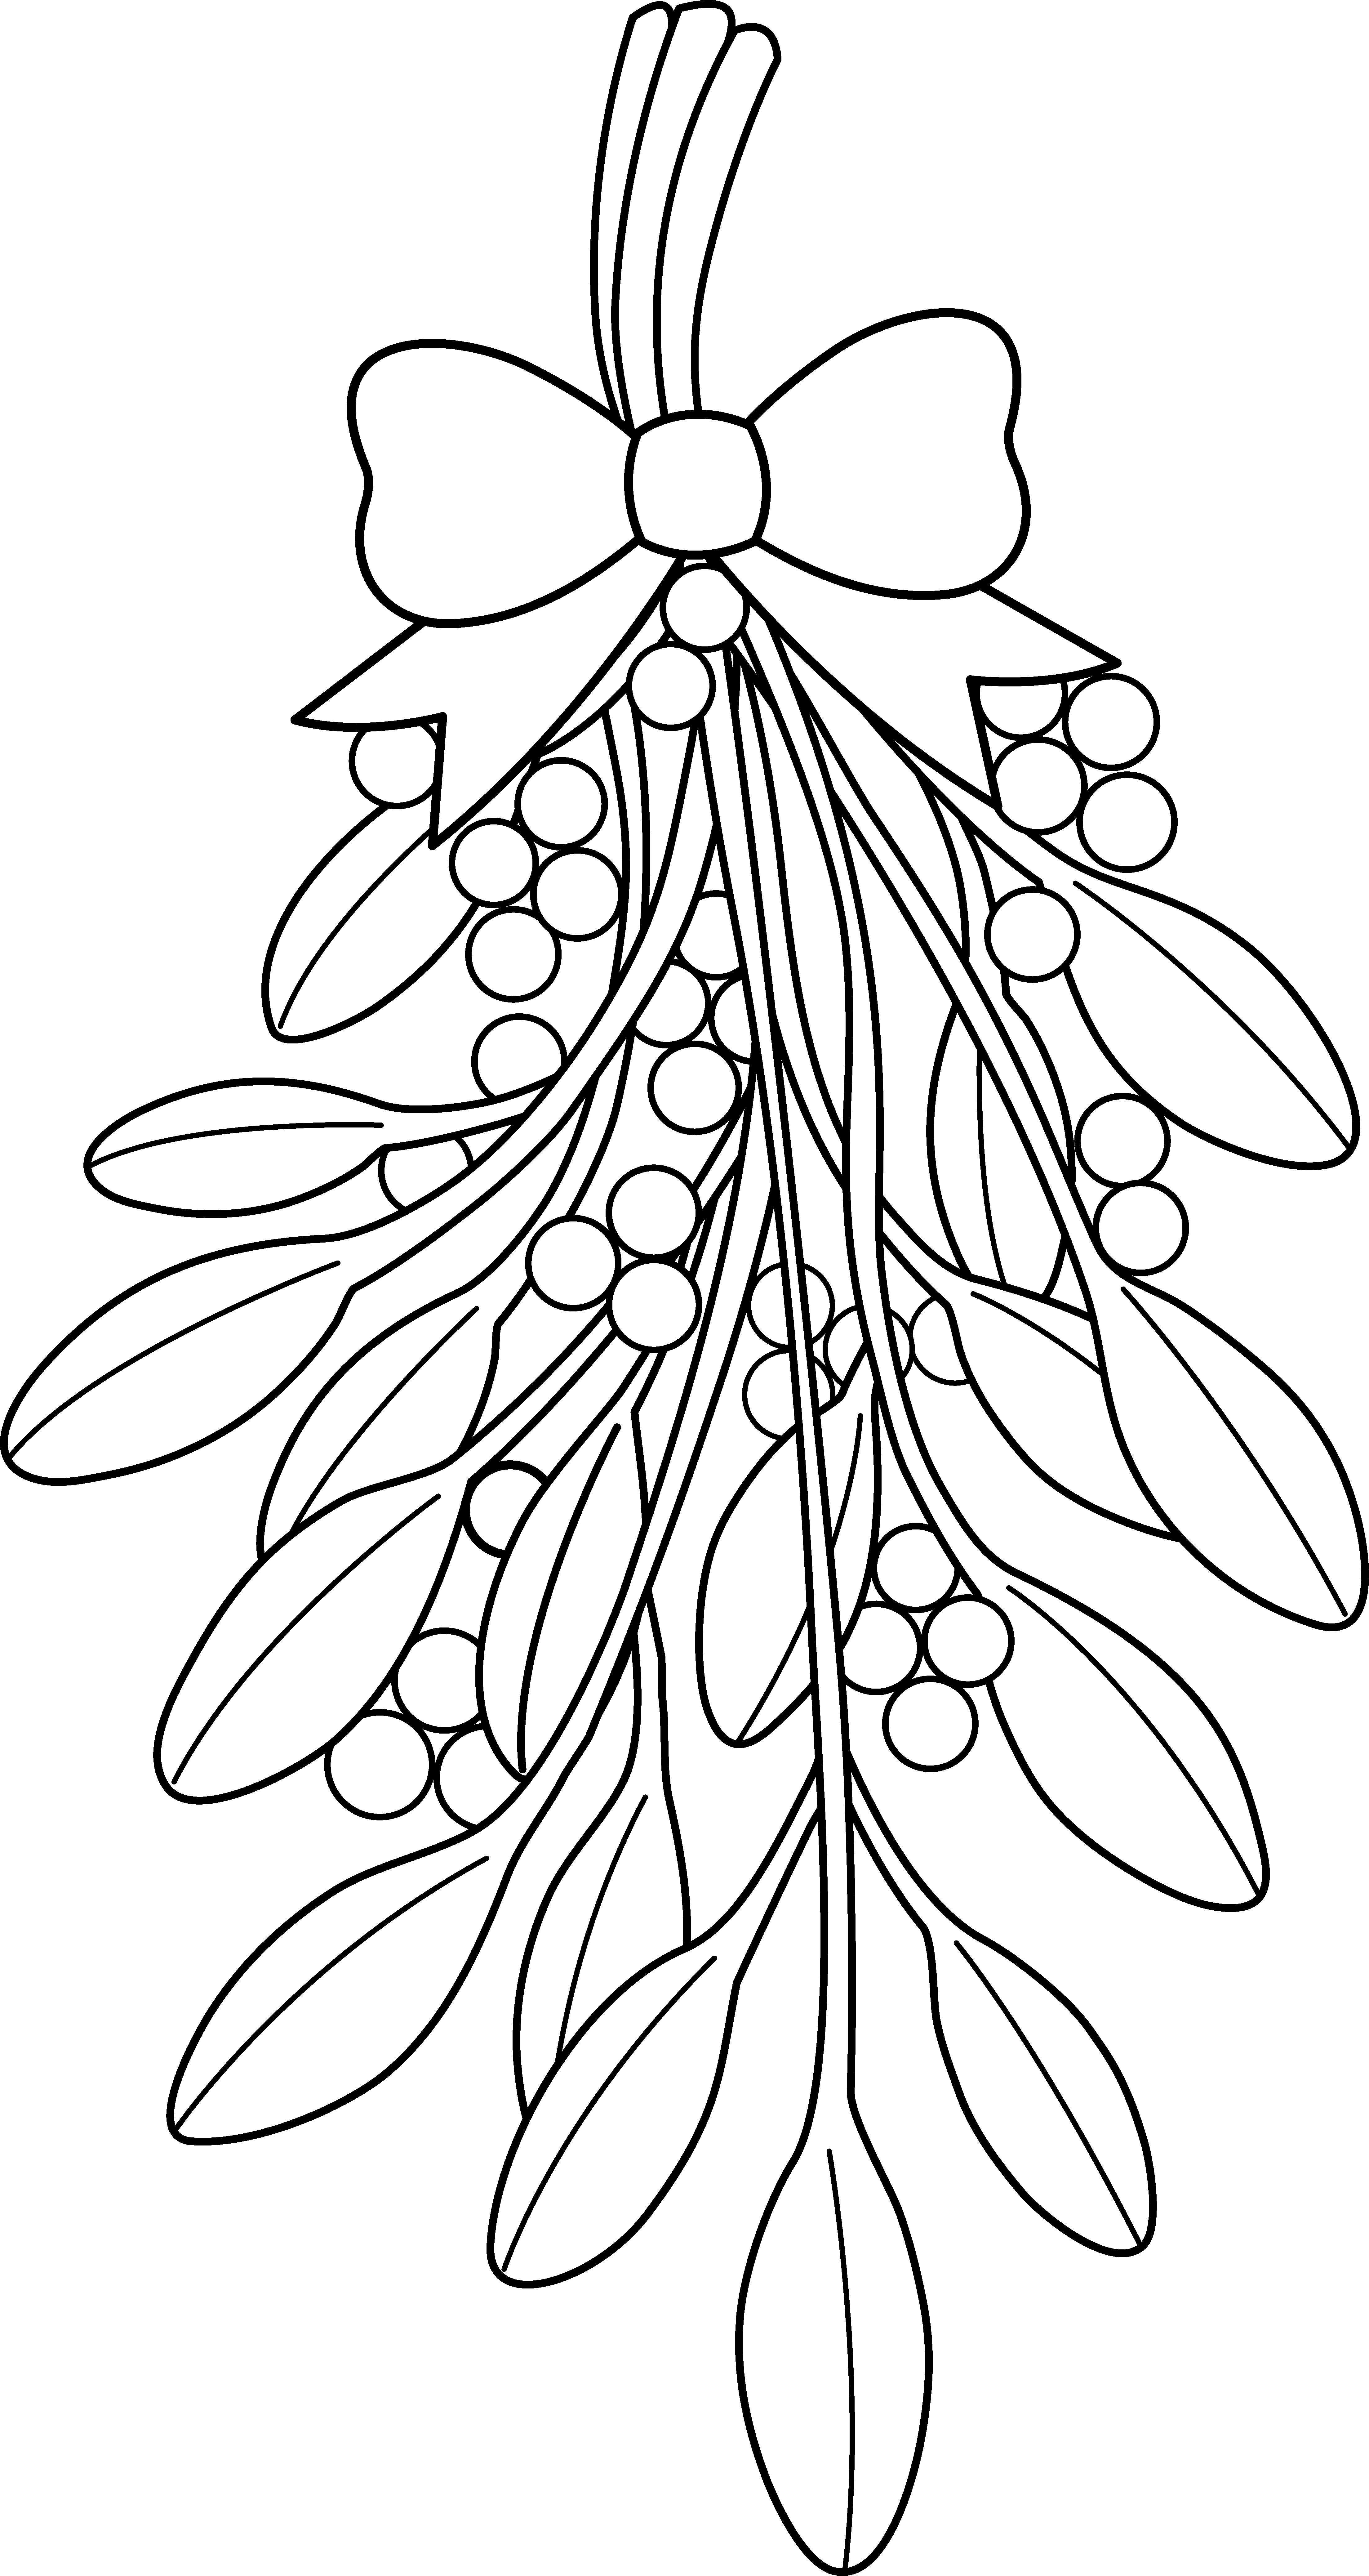 4415x8305 Christmas Coloring Pages Mistletoe Clipart Black And White